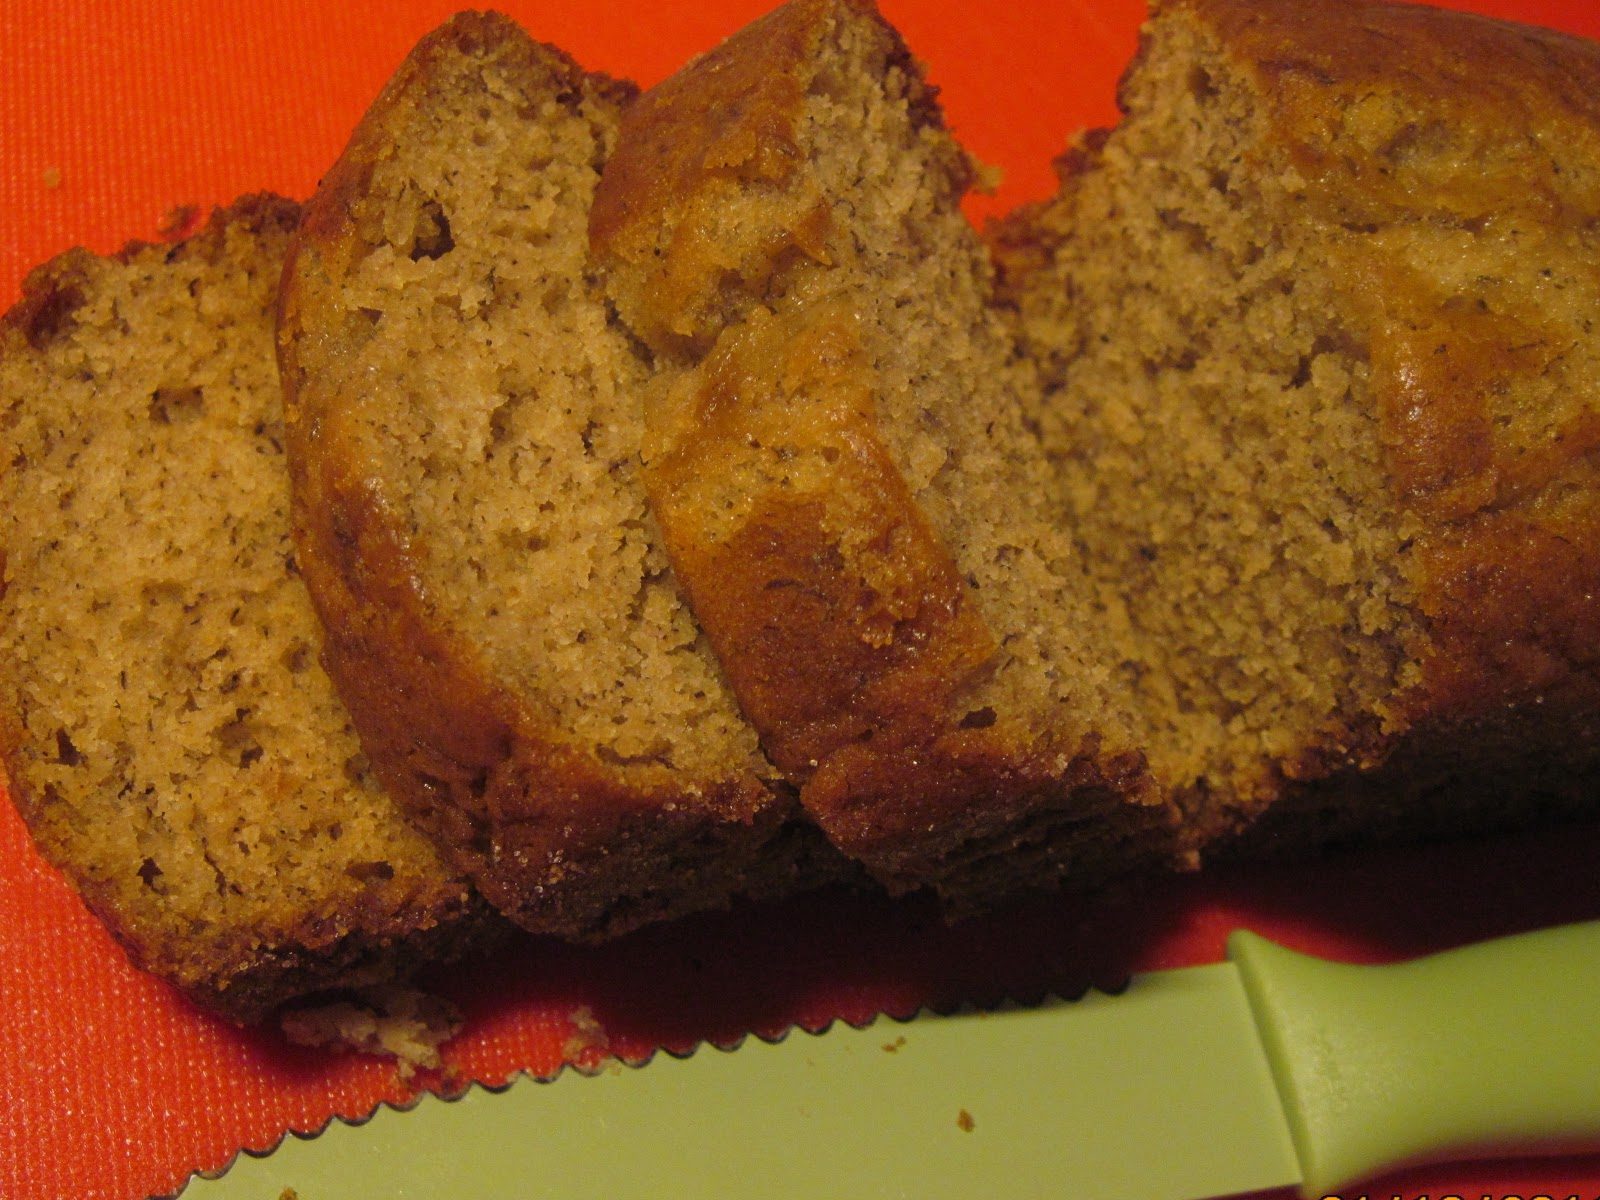 The Better Baker: Sour Cream Banana Bread & a Healthy Substitute